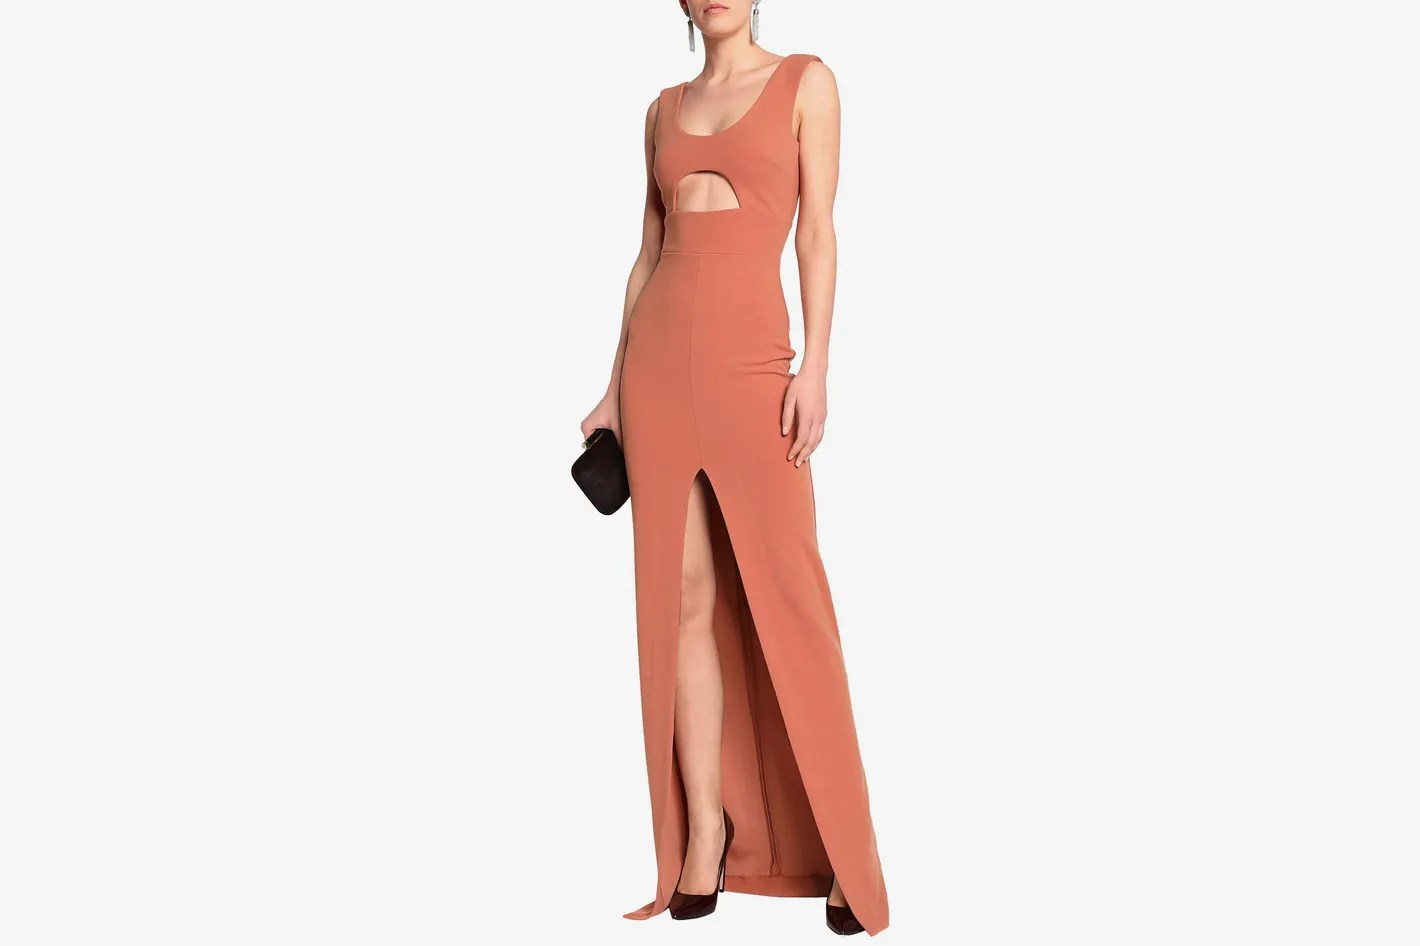 Thrifty Solace London Cutout Crepe Gown Dresses To Wear To A Wedding Under 2018 Black Tie Event Dresses South Africa Black Tie Event Dresses Uk wedding dress Black Tie Event Dresses